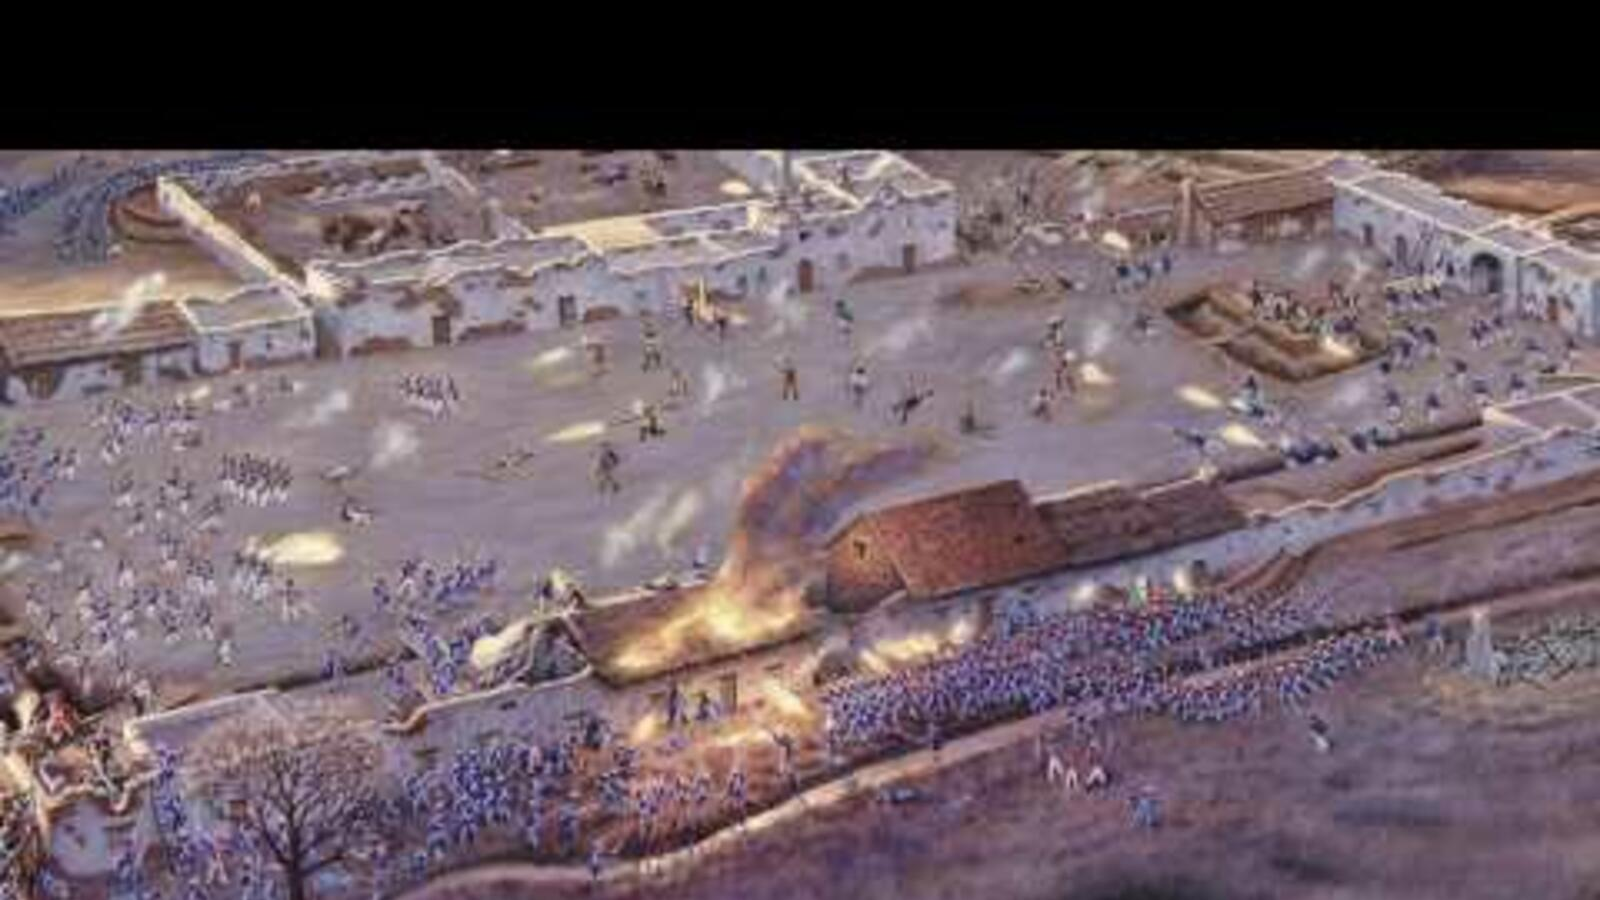 Happy Independence day Texas! Remember The Alamo!